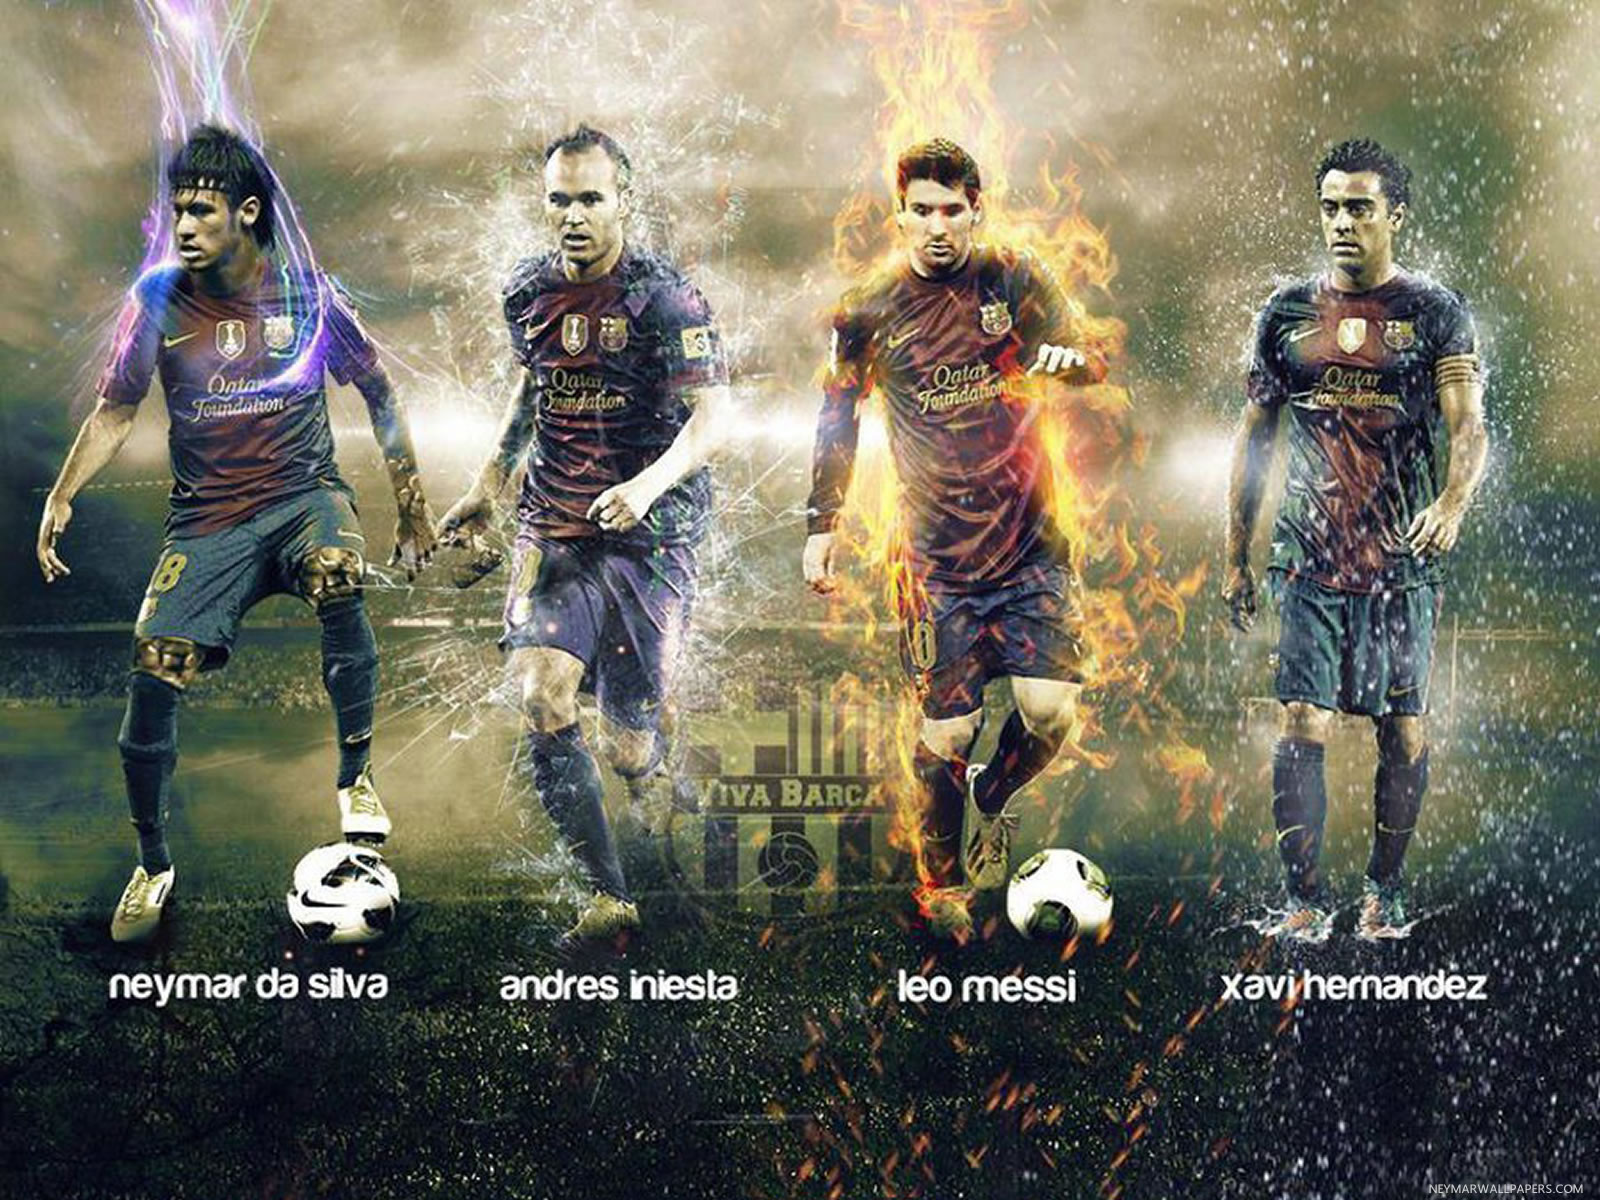 Neymar Iniesta Messi And Hernandez Wallpaper Neymar Messi Xavi Iniesta Hd 1600x1200 Download Hd Wallpaper Wallpapertip